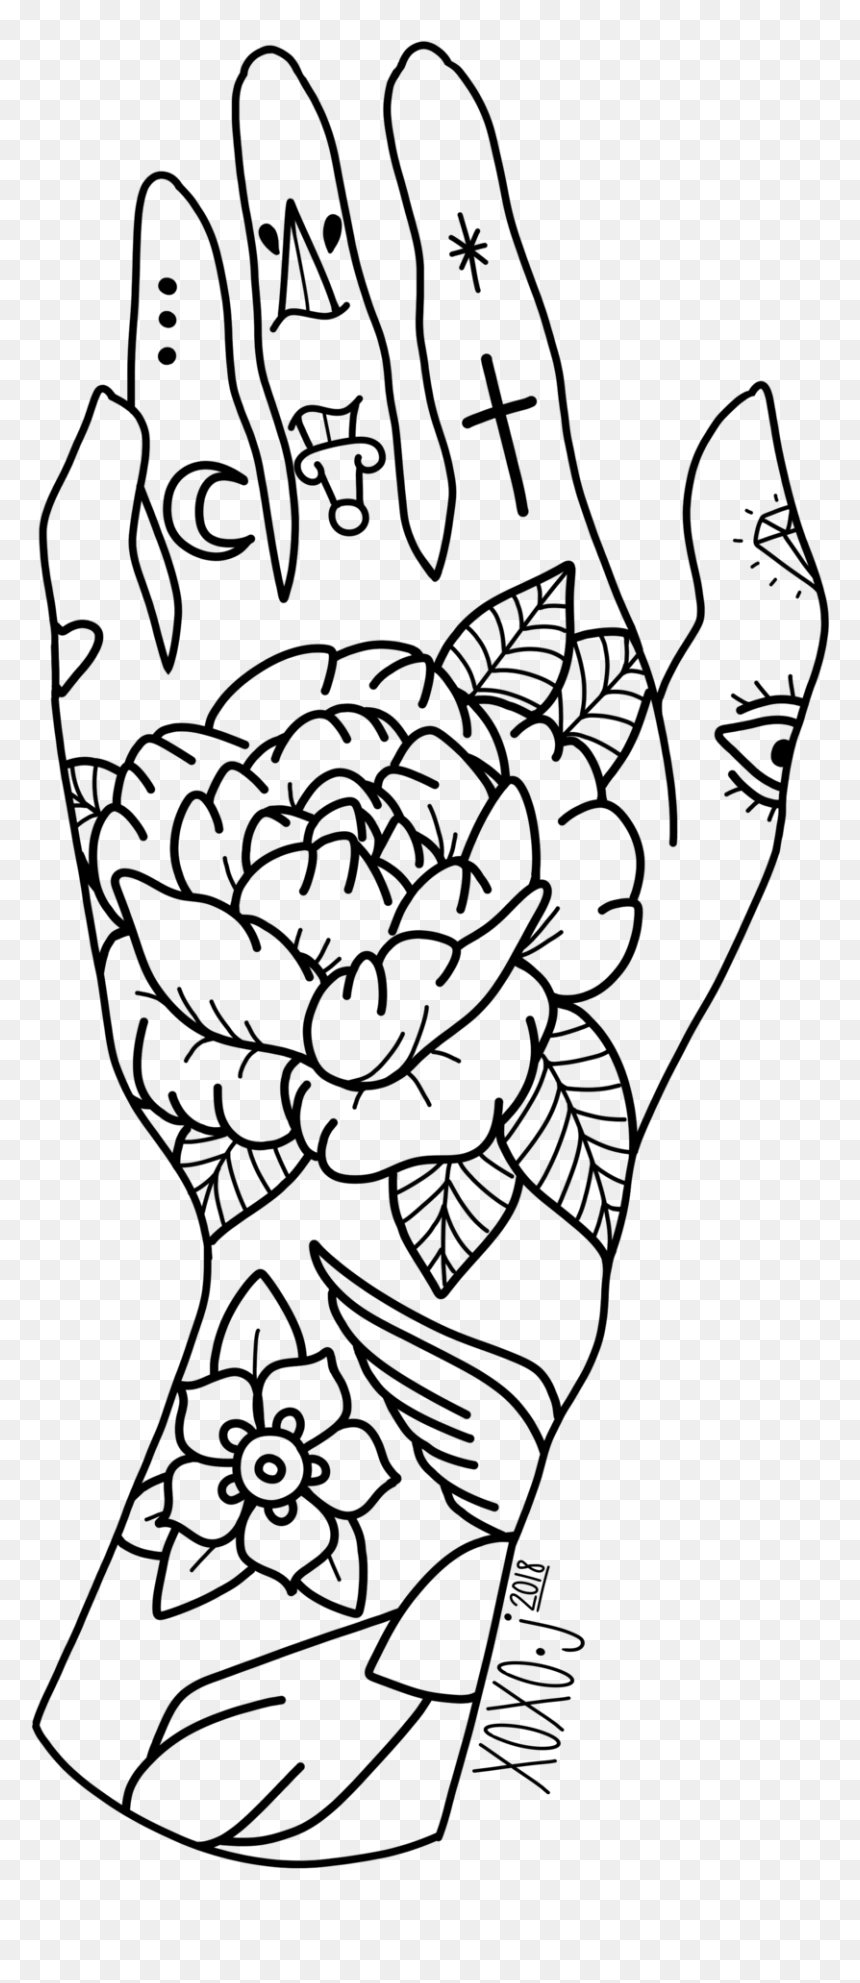 Hand Tattoo Drawings Hd Png Download Vhv Discover 87 free hand tattoos png images with transparent backgrounds. hand tattoo drawings hd png download vhv